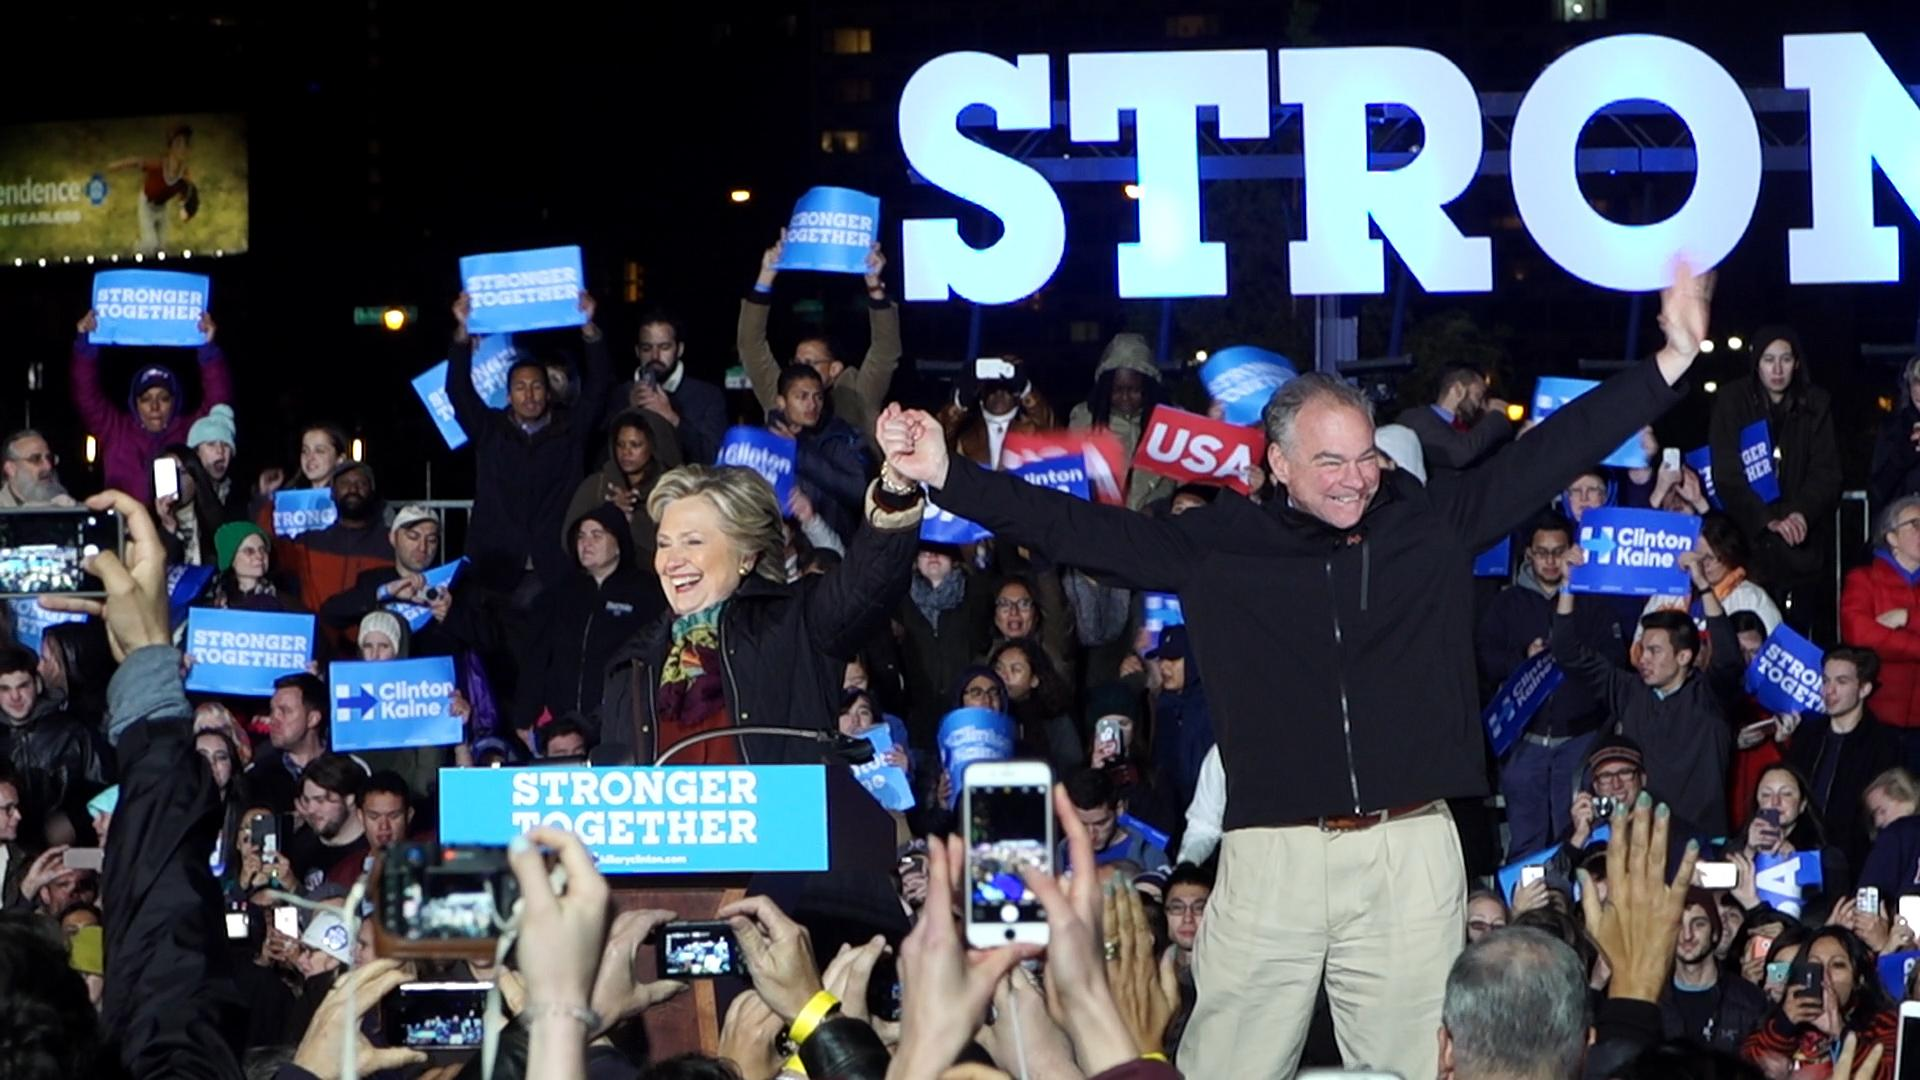 Clinton supporters confident, but not complacent, in Philadelphia